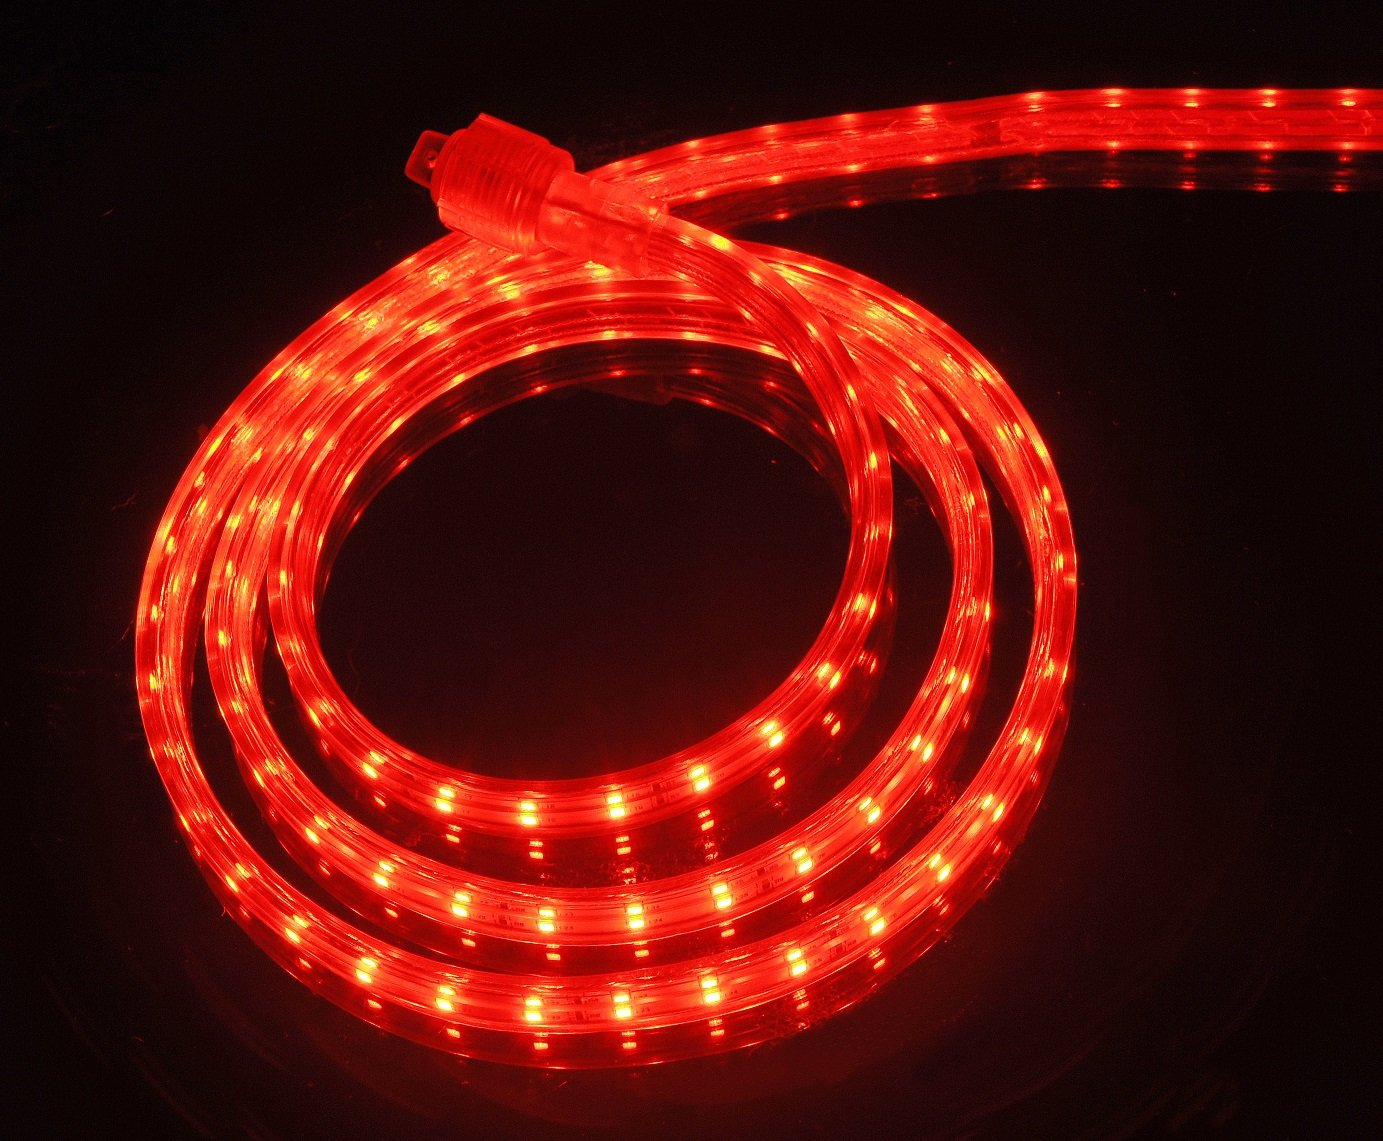 Cbconcept 120VSMD3528-1M-WW 3.3-Feet Warm White 120 Volt LED SMD3528 Flexible Flat LED Strip Rope Light, 3/8-Inch Width x 1/4-Inch Thickness